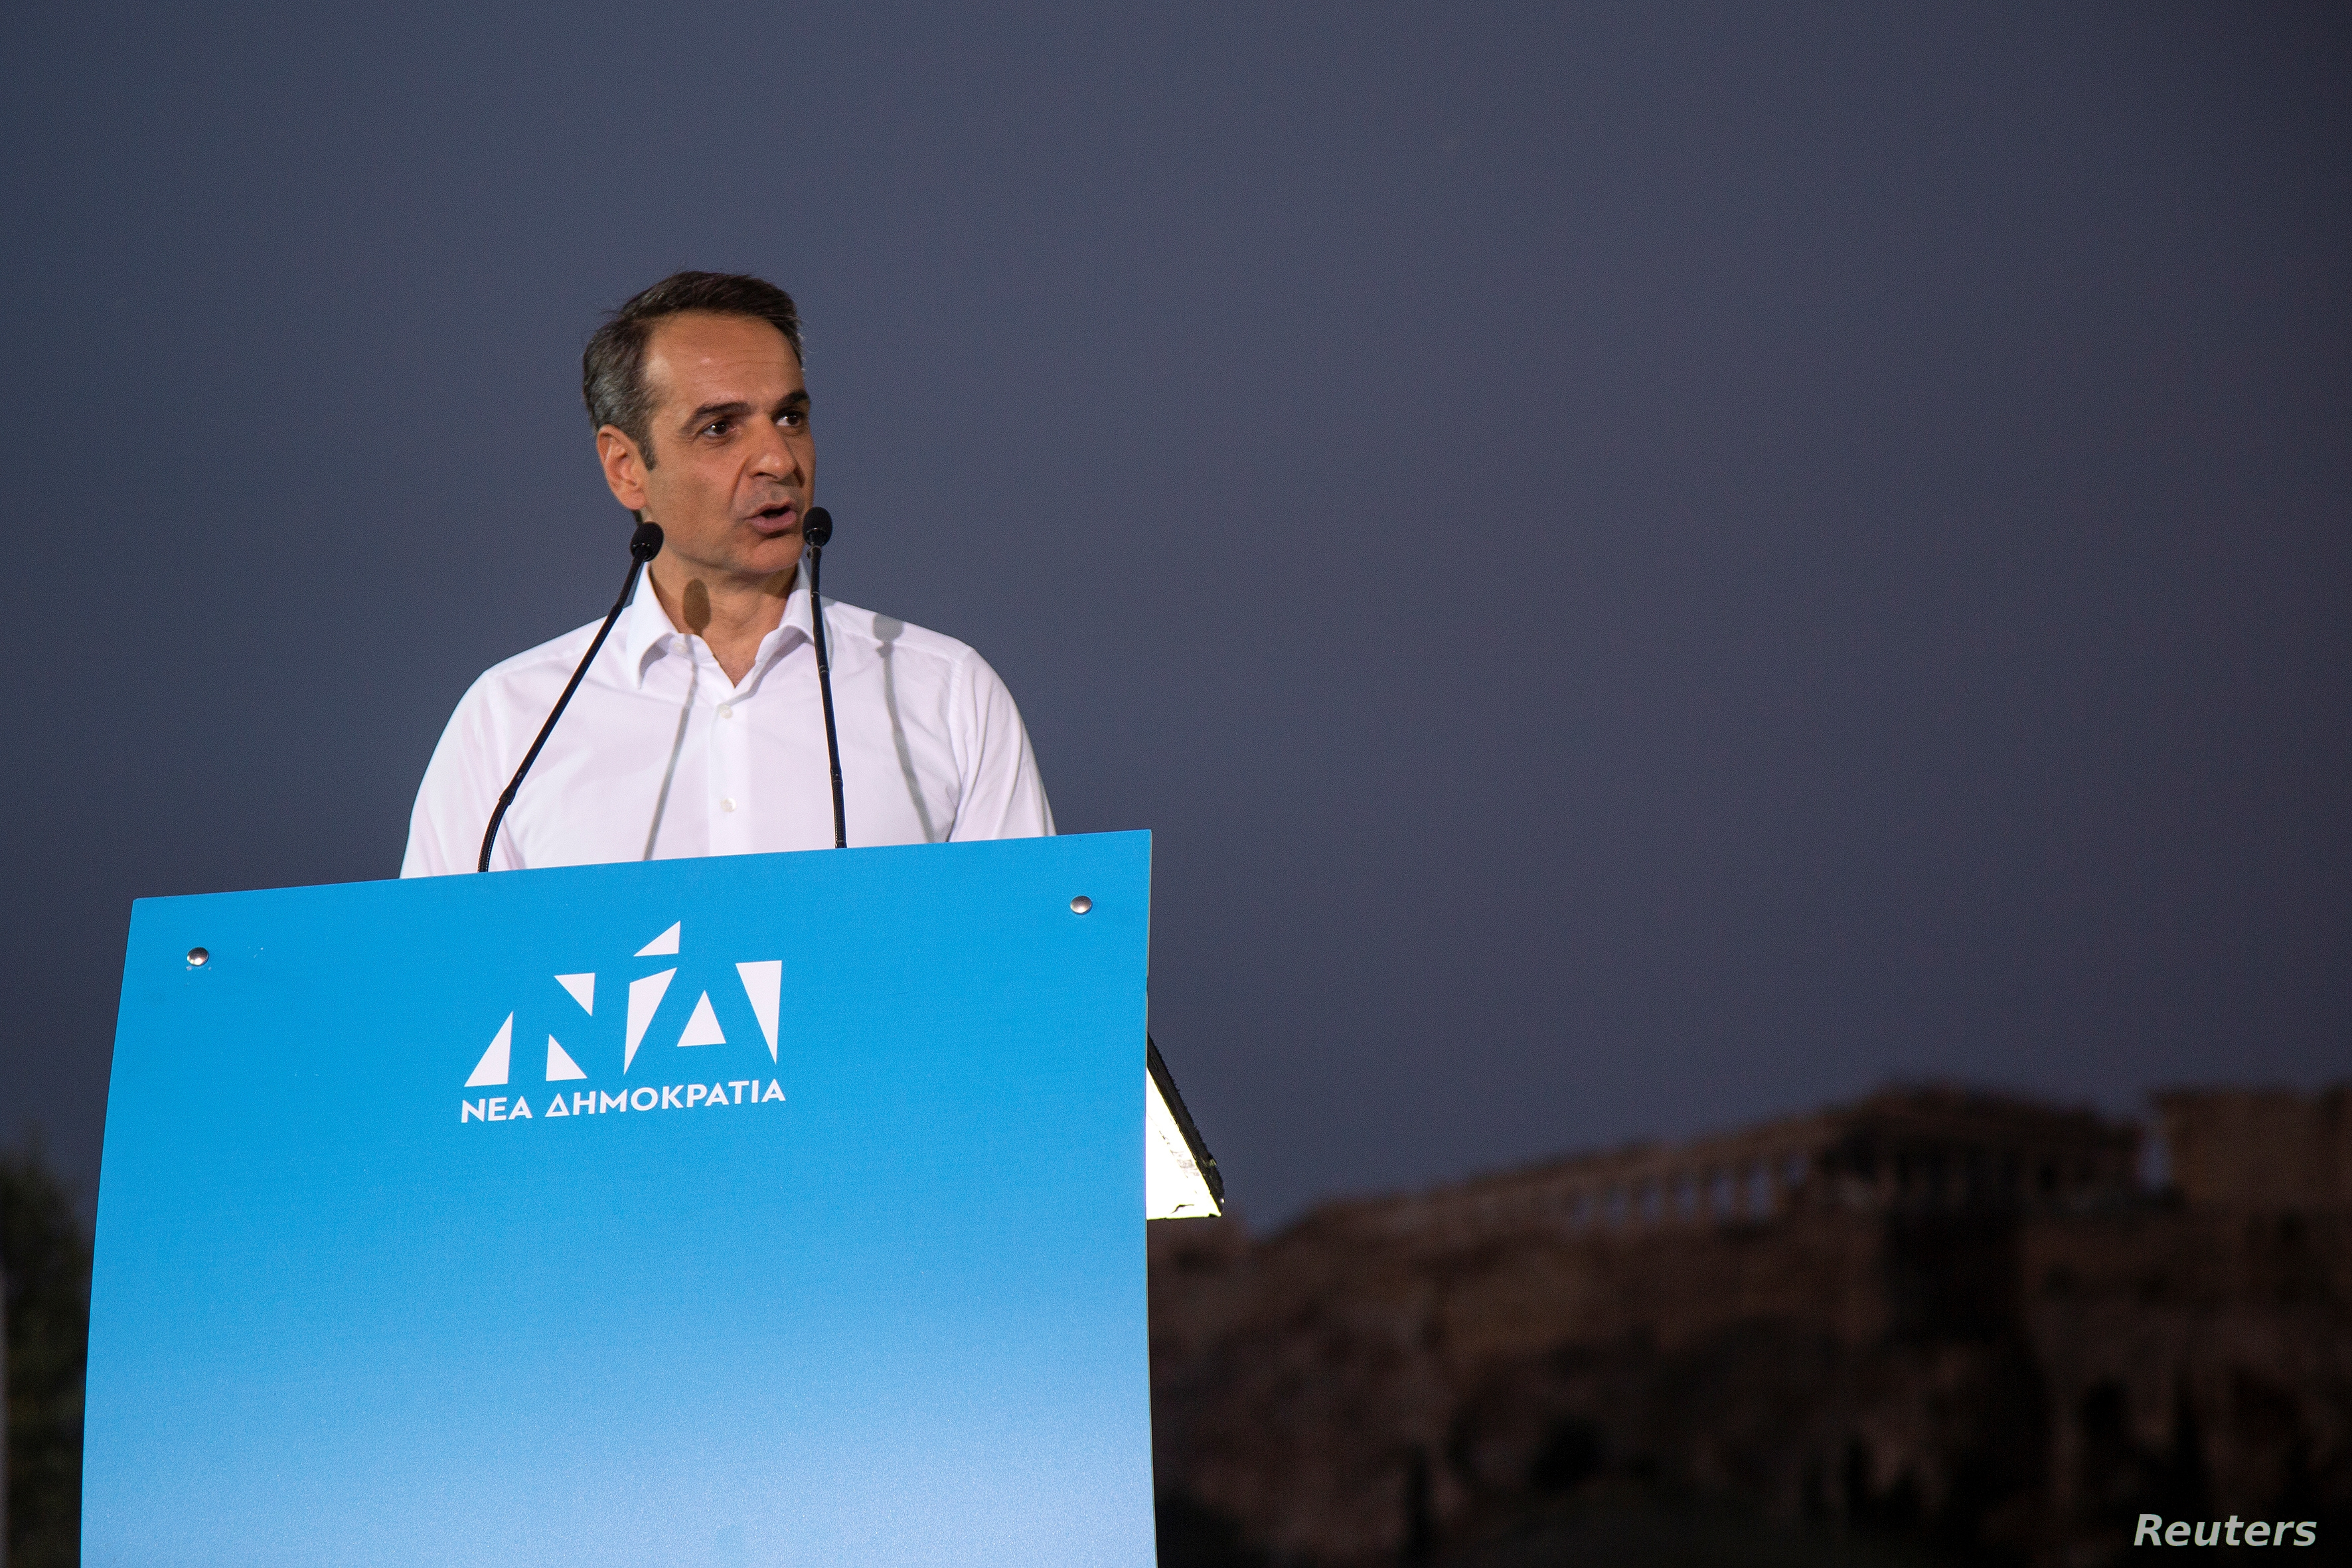 Main opposition New Democracy conservative party leader Mitsotakis addresses supporters during a pre-election rally in Athens